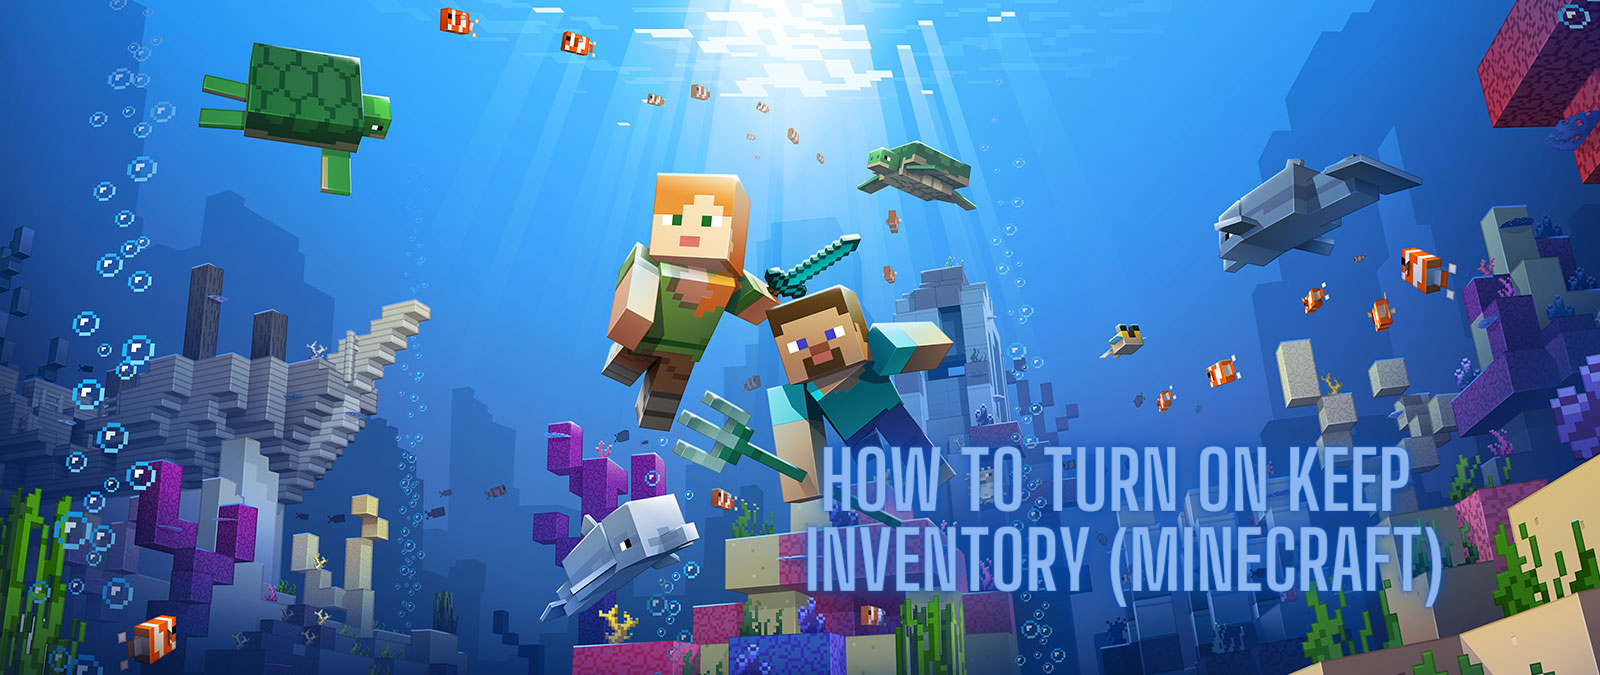 How to Turn On Keep Inventory (Minecraft)